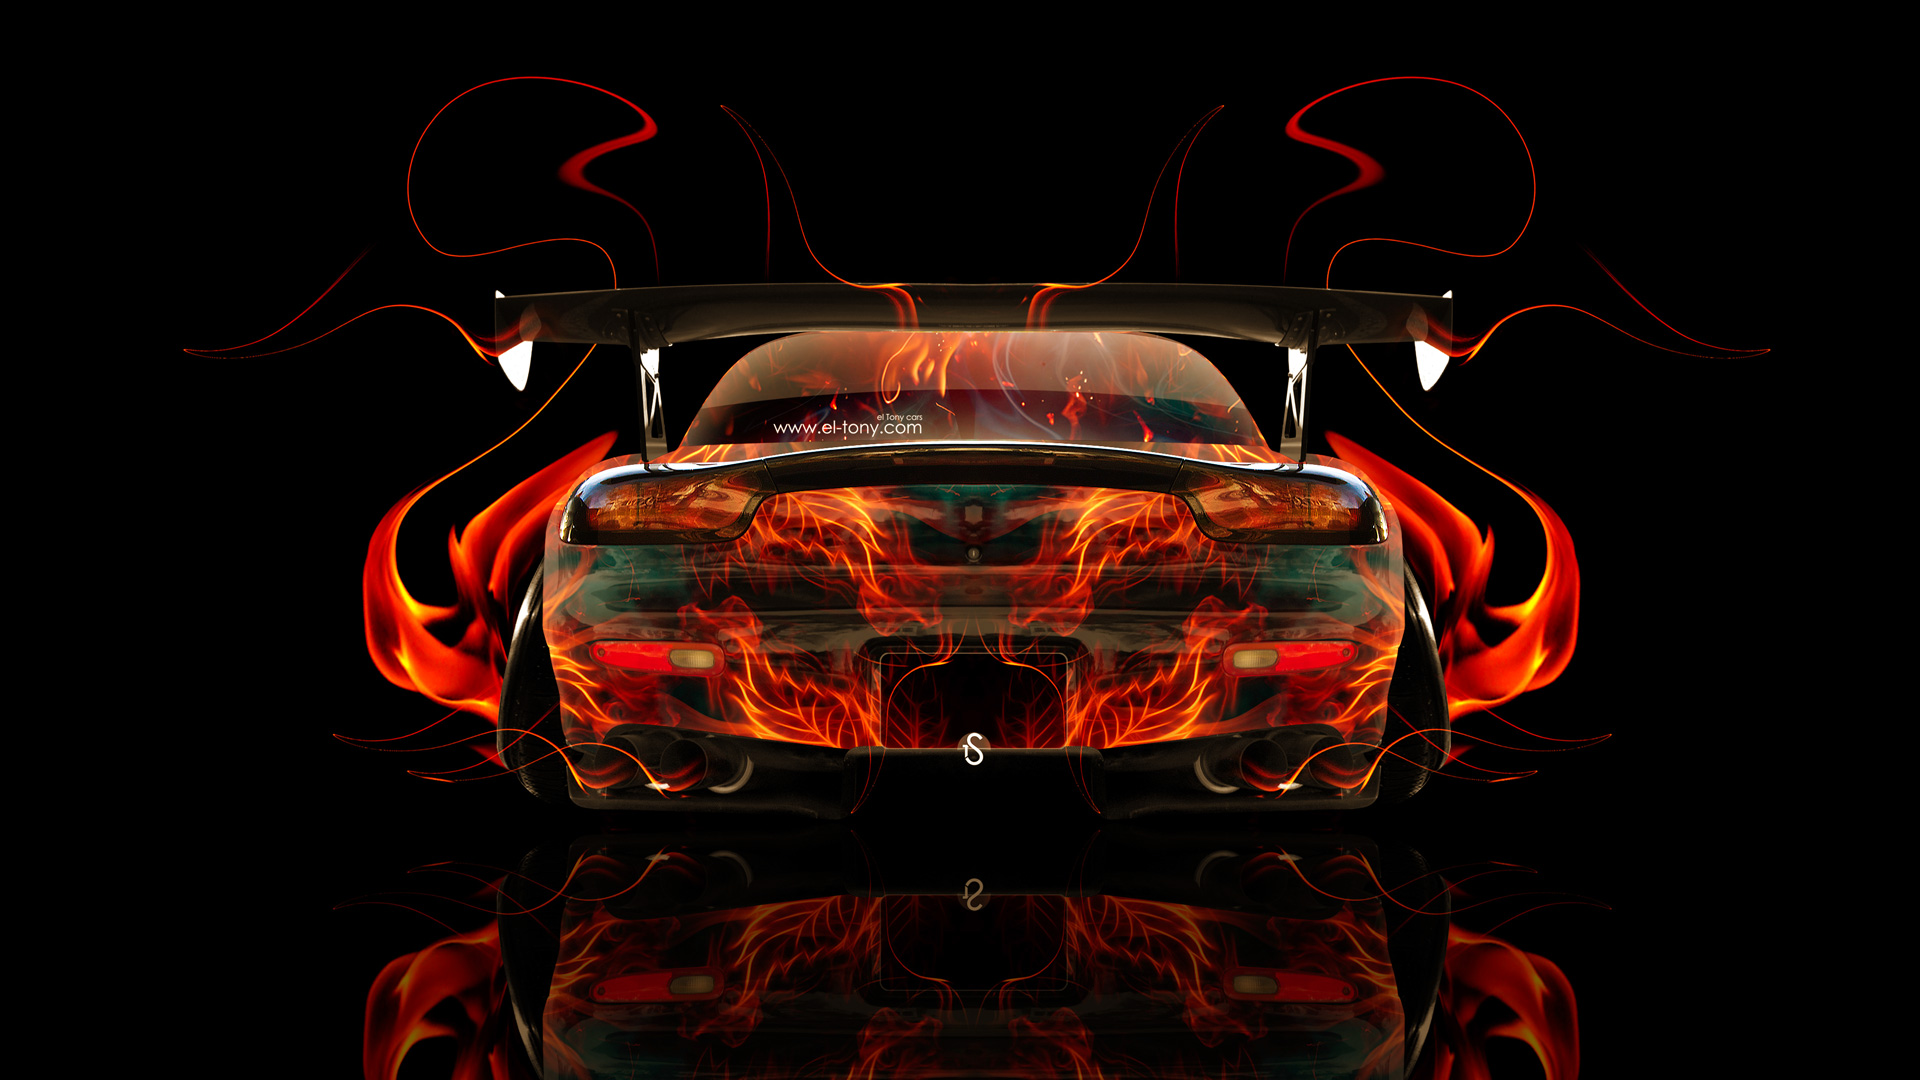 Porsche 911 Front Azure Fire Abstract Car 2014 HD Wallpapers Design By Tony Kokhan Www.el Tony.com_  (1920×1080) | Illustrator | Pinterest | Illustrators